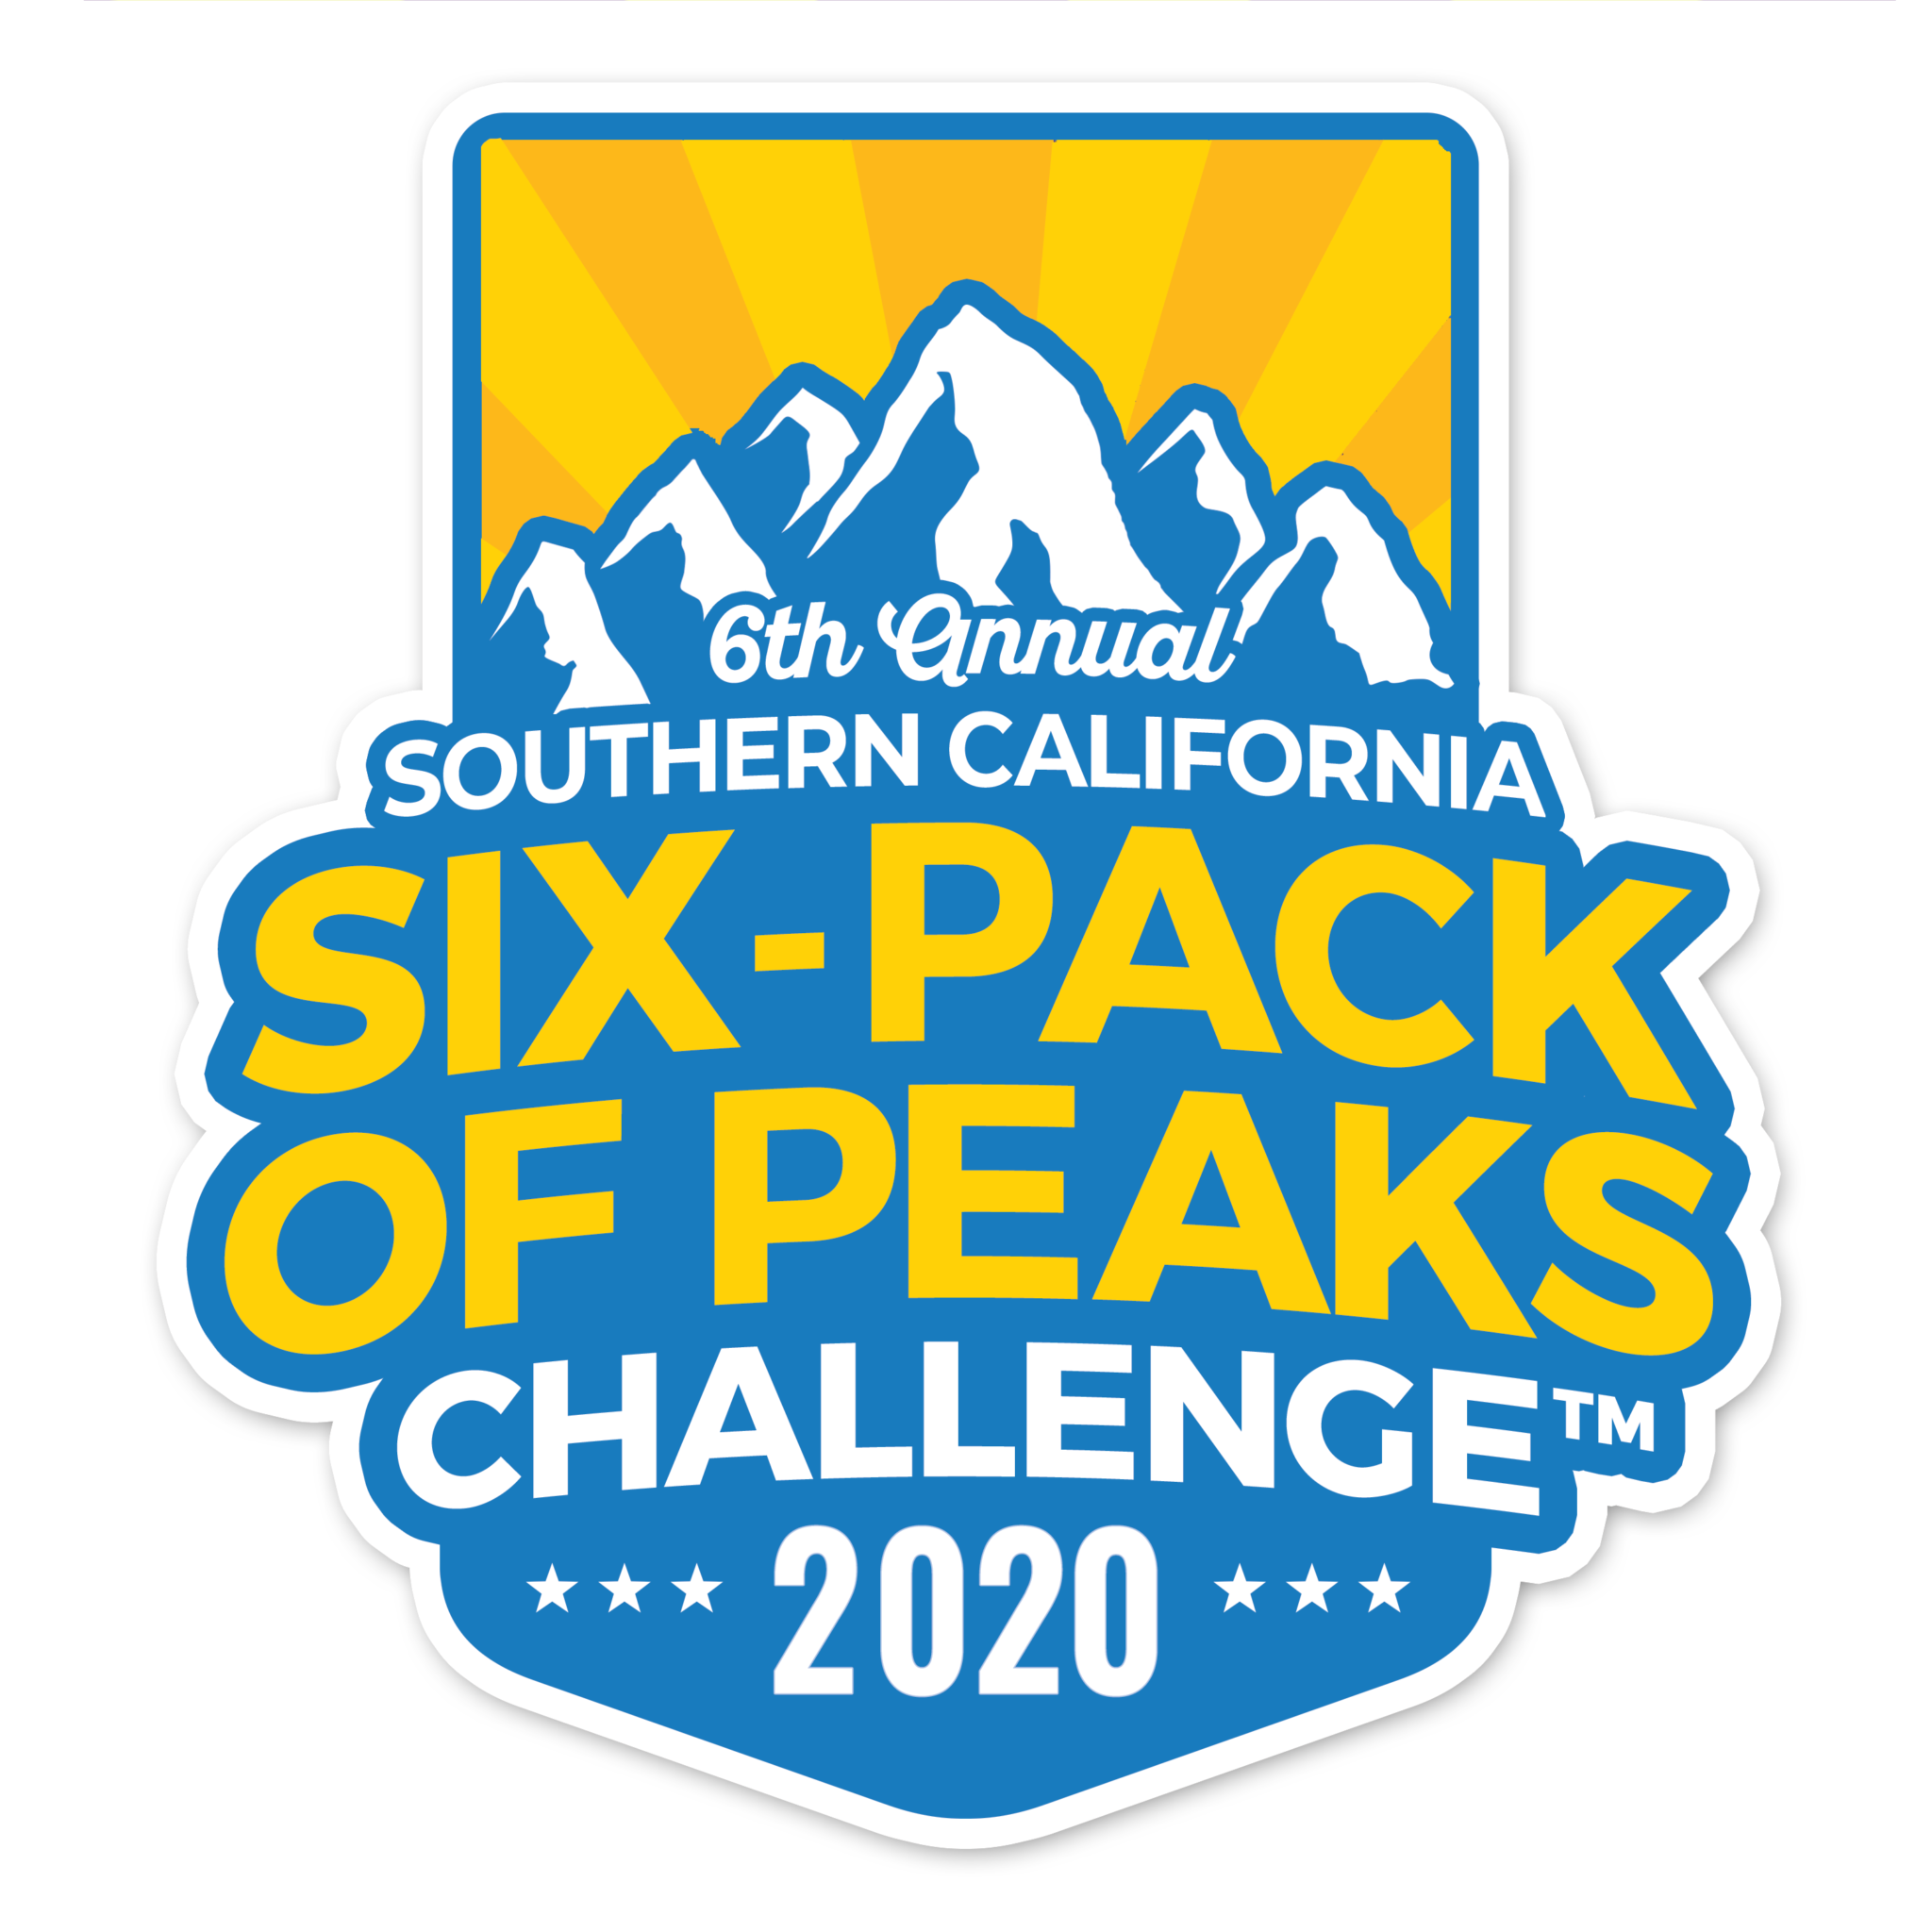 Six Pack of Peaks